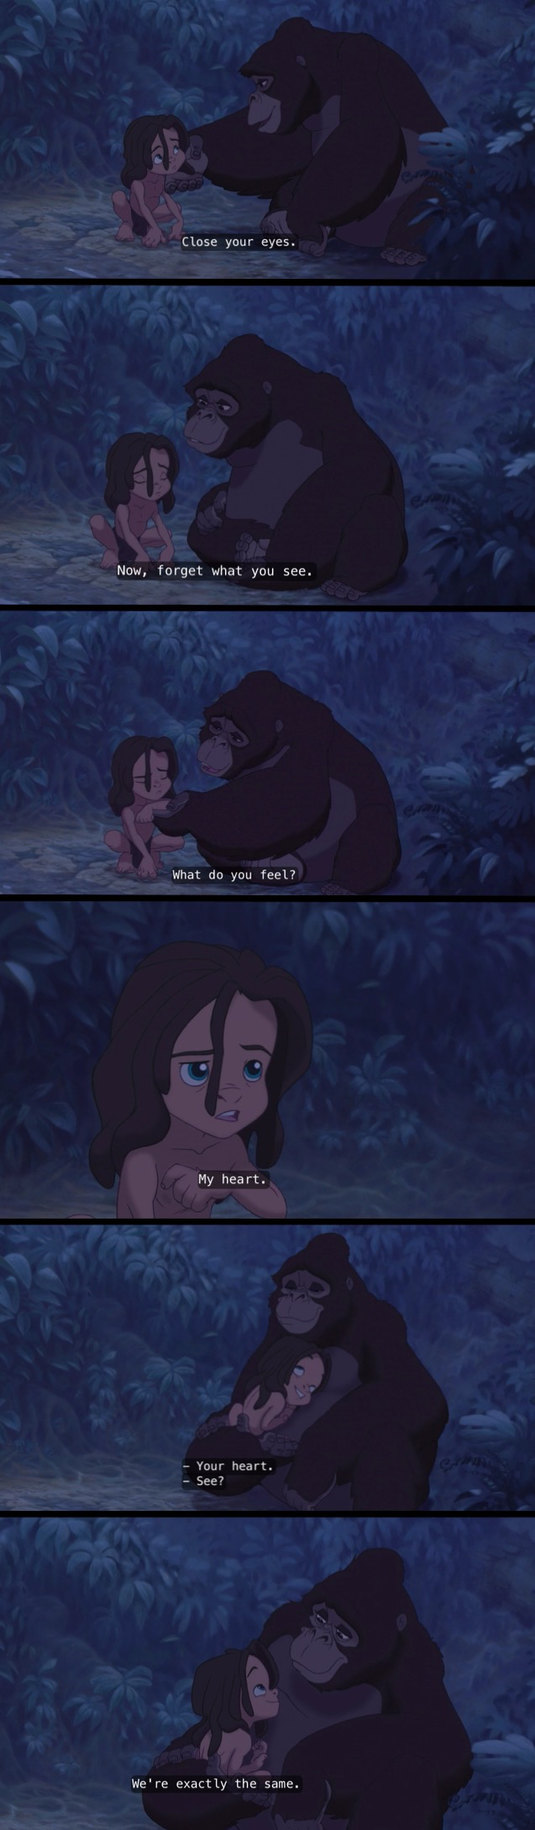 Tarzan is real. - meme